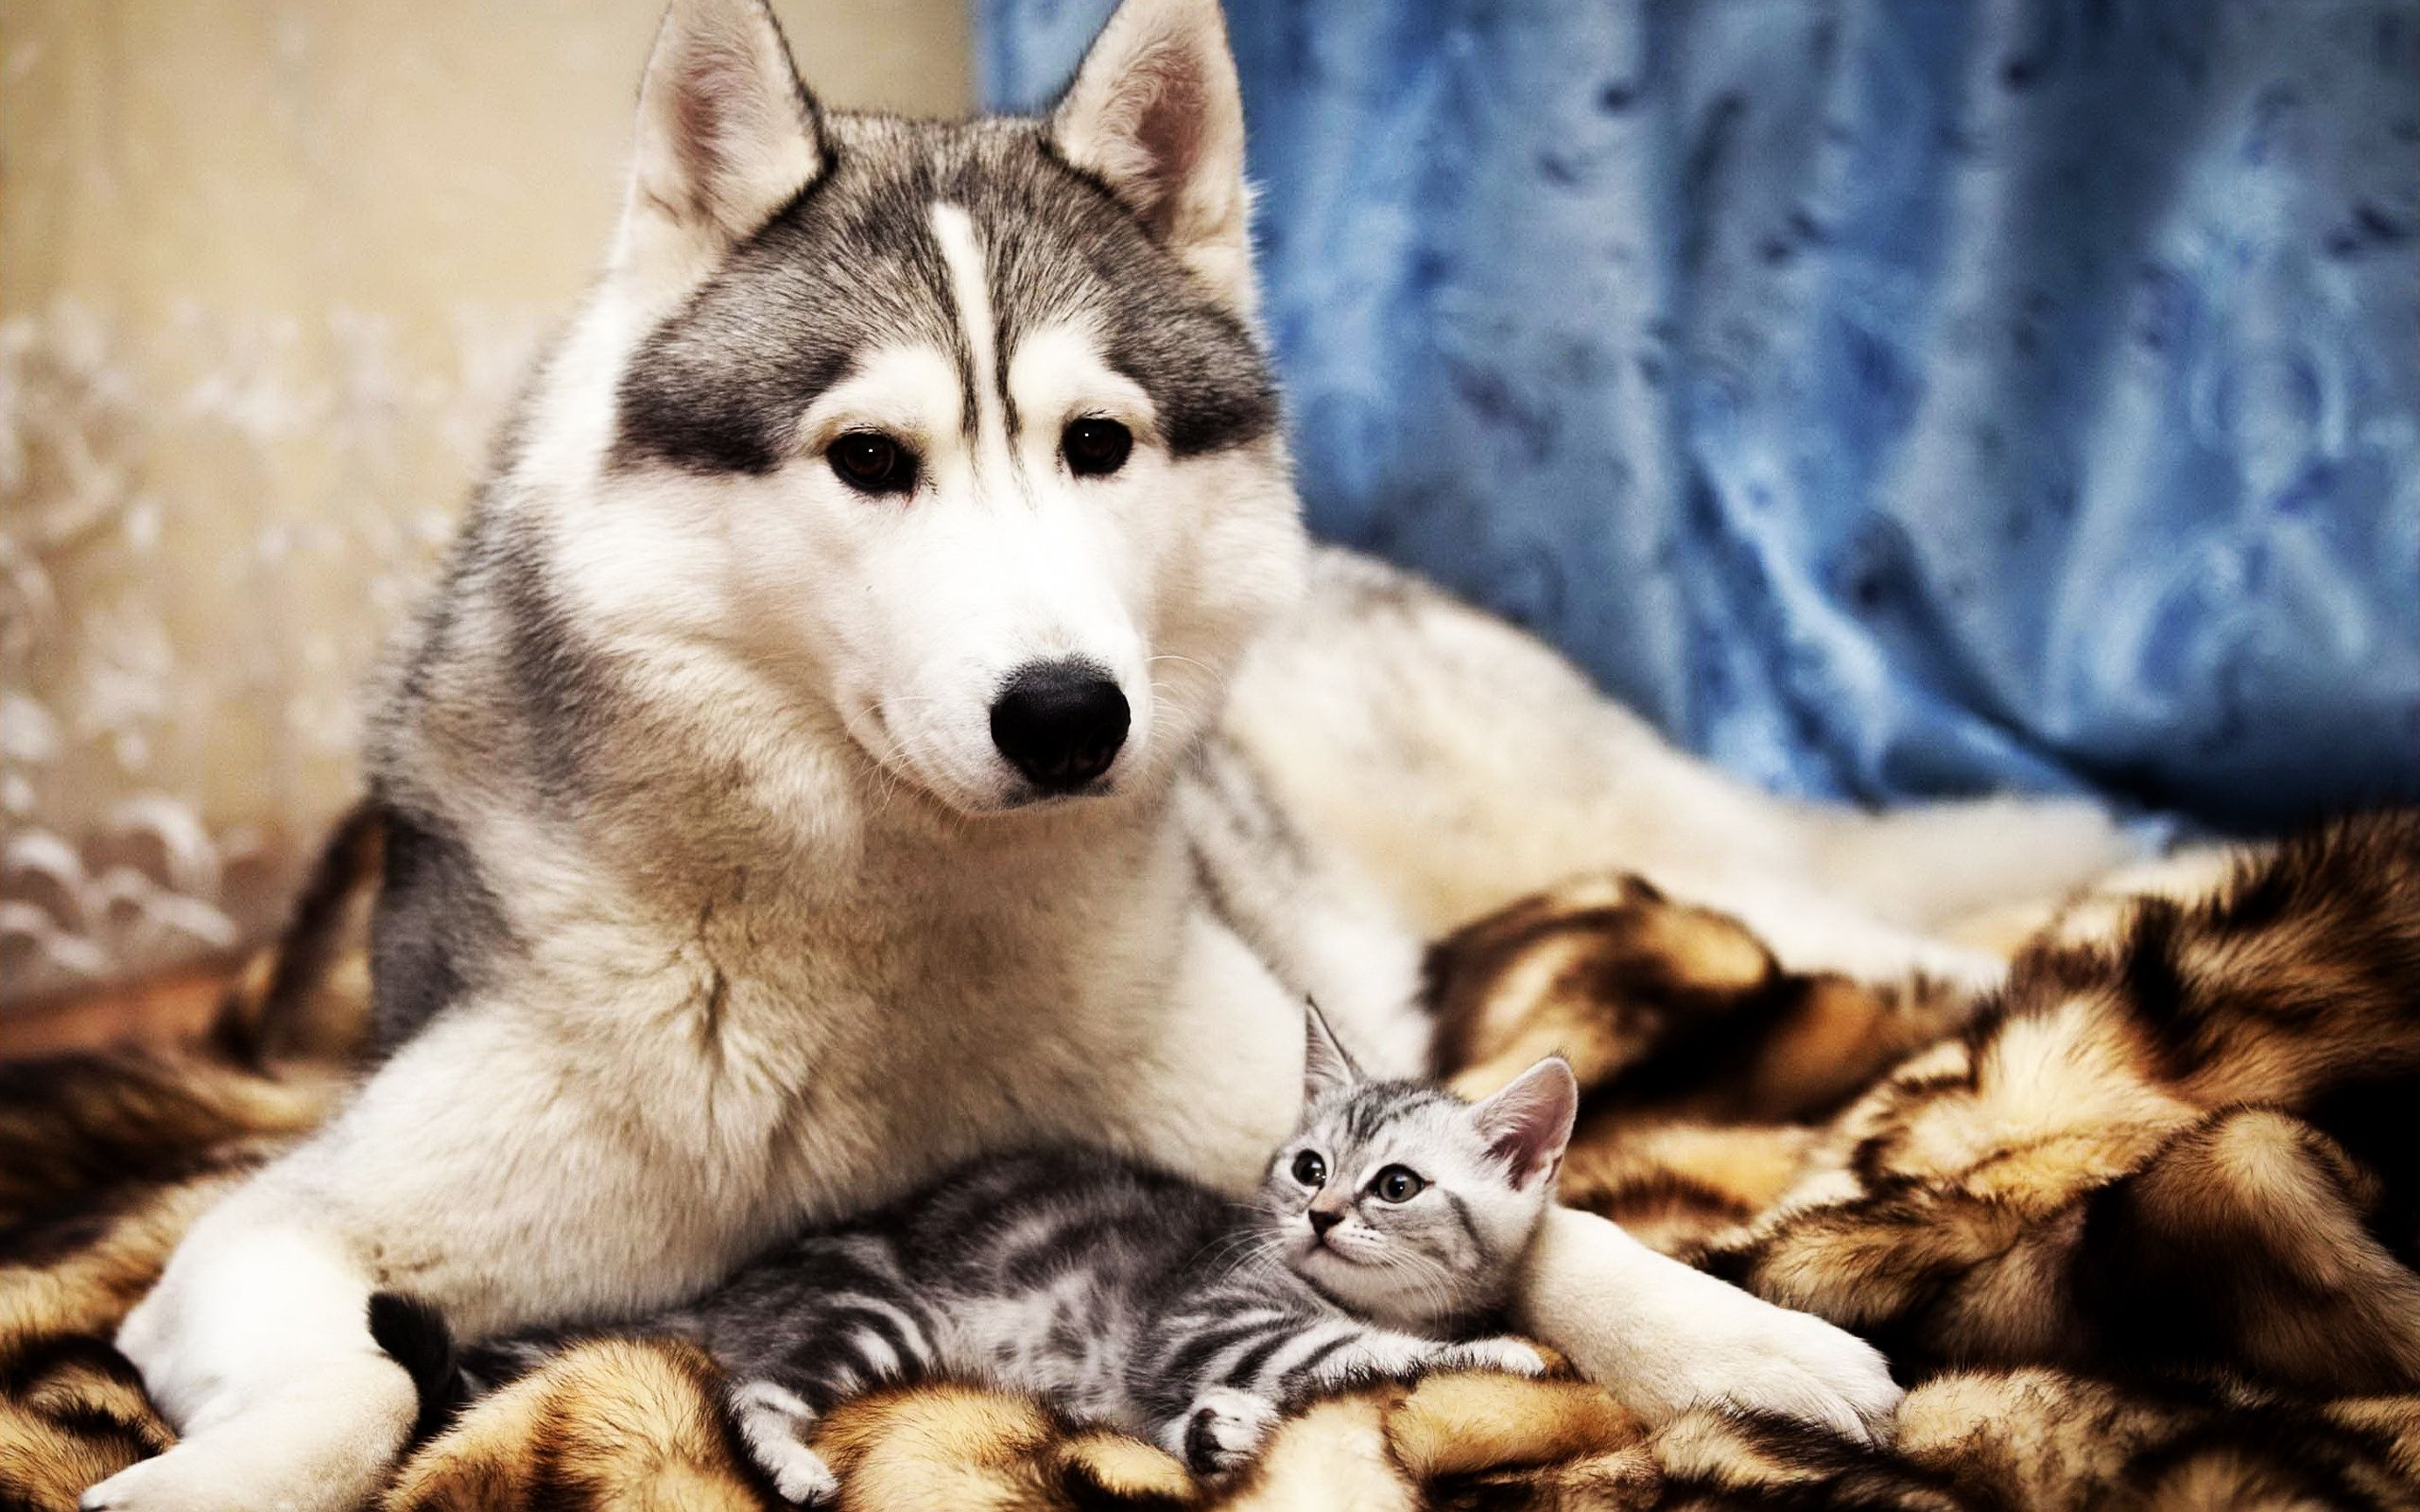 Dog and cat friends bff 2560x1600